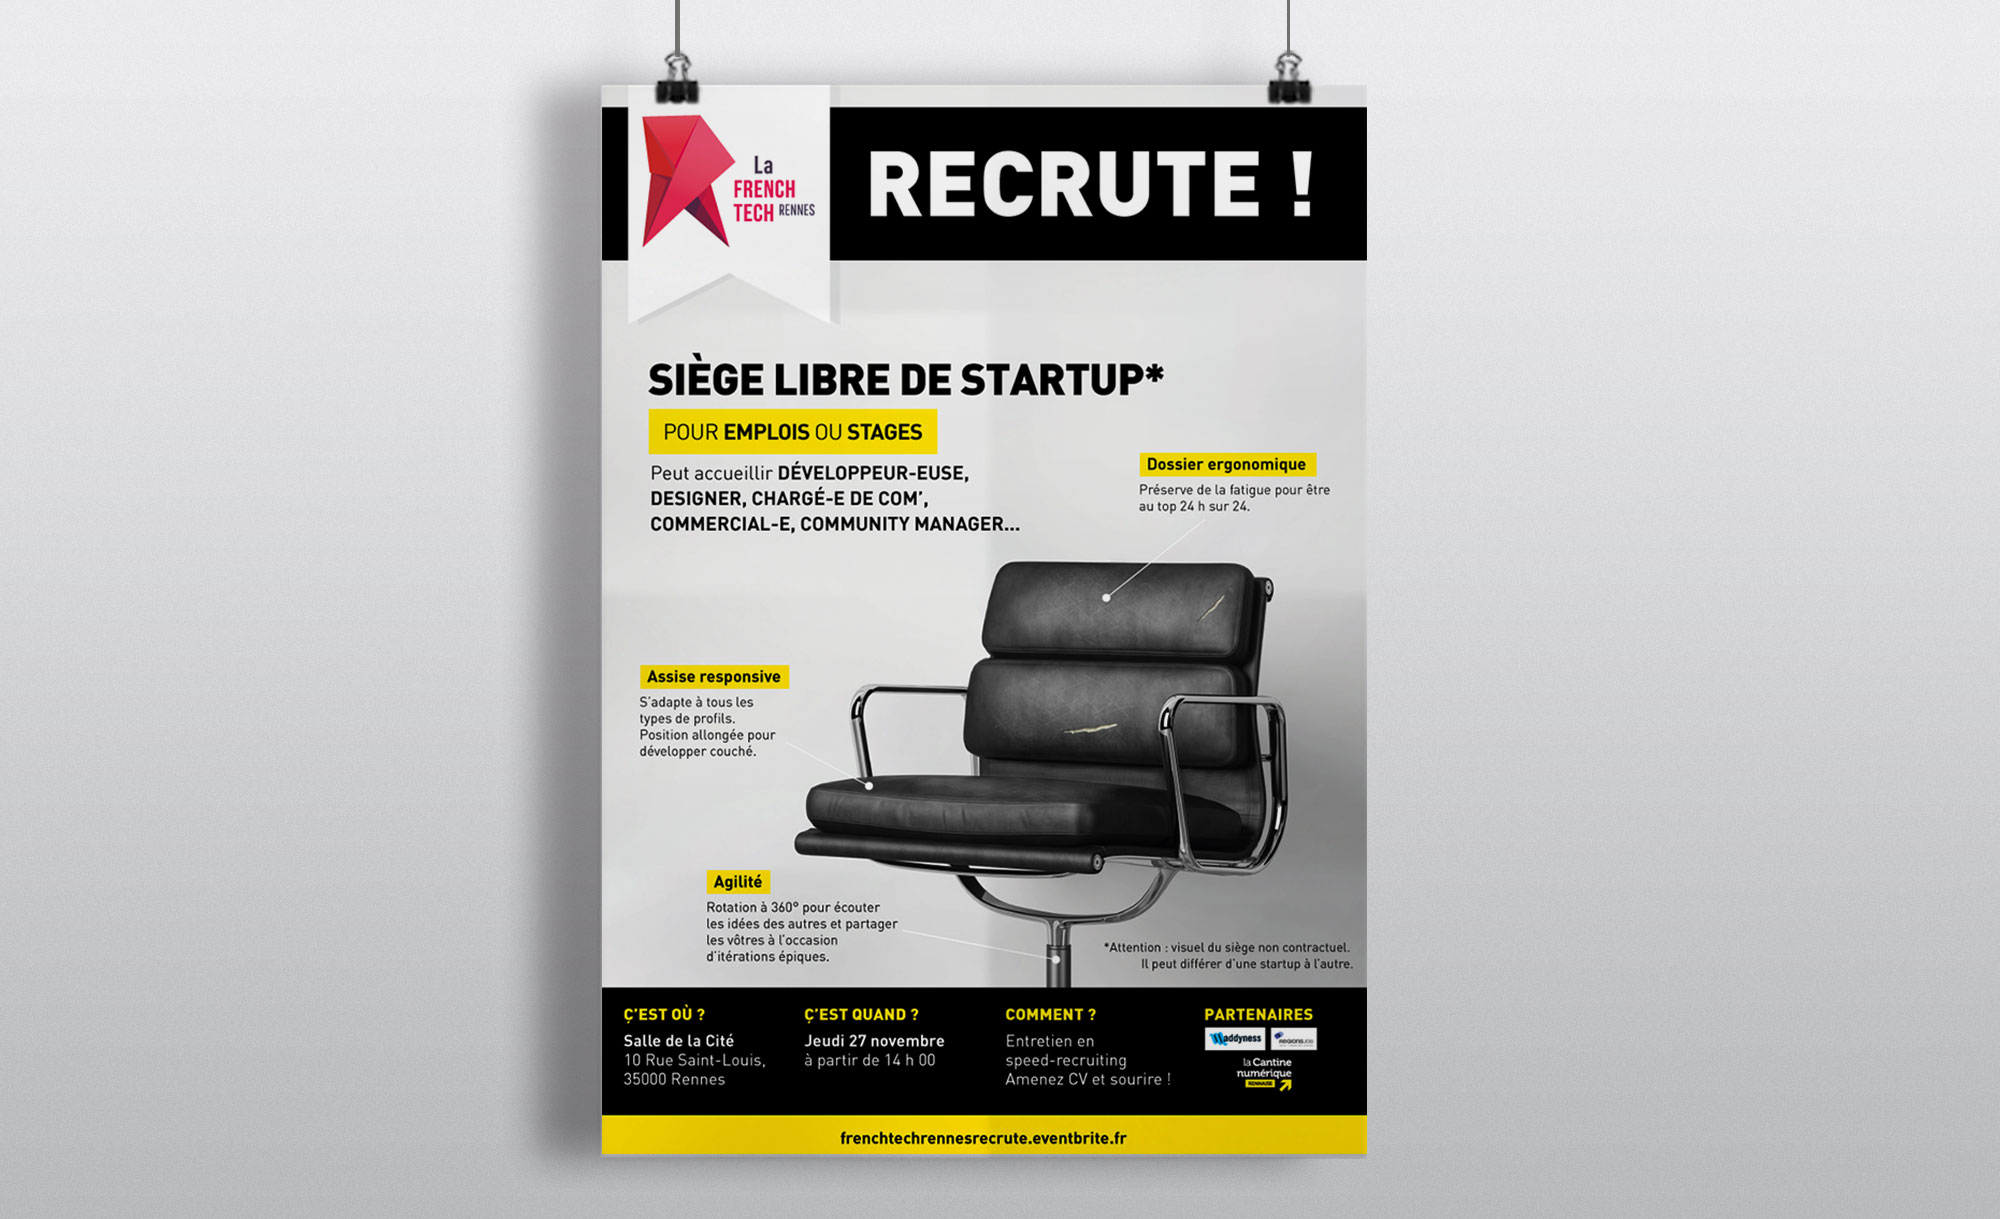 La French Tech de Rennes recrute